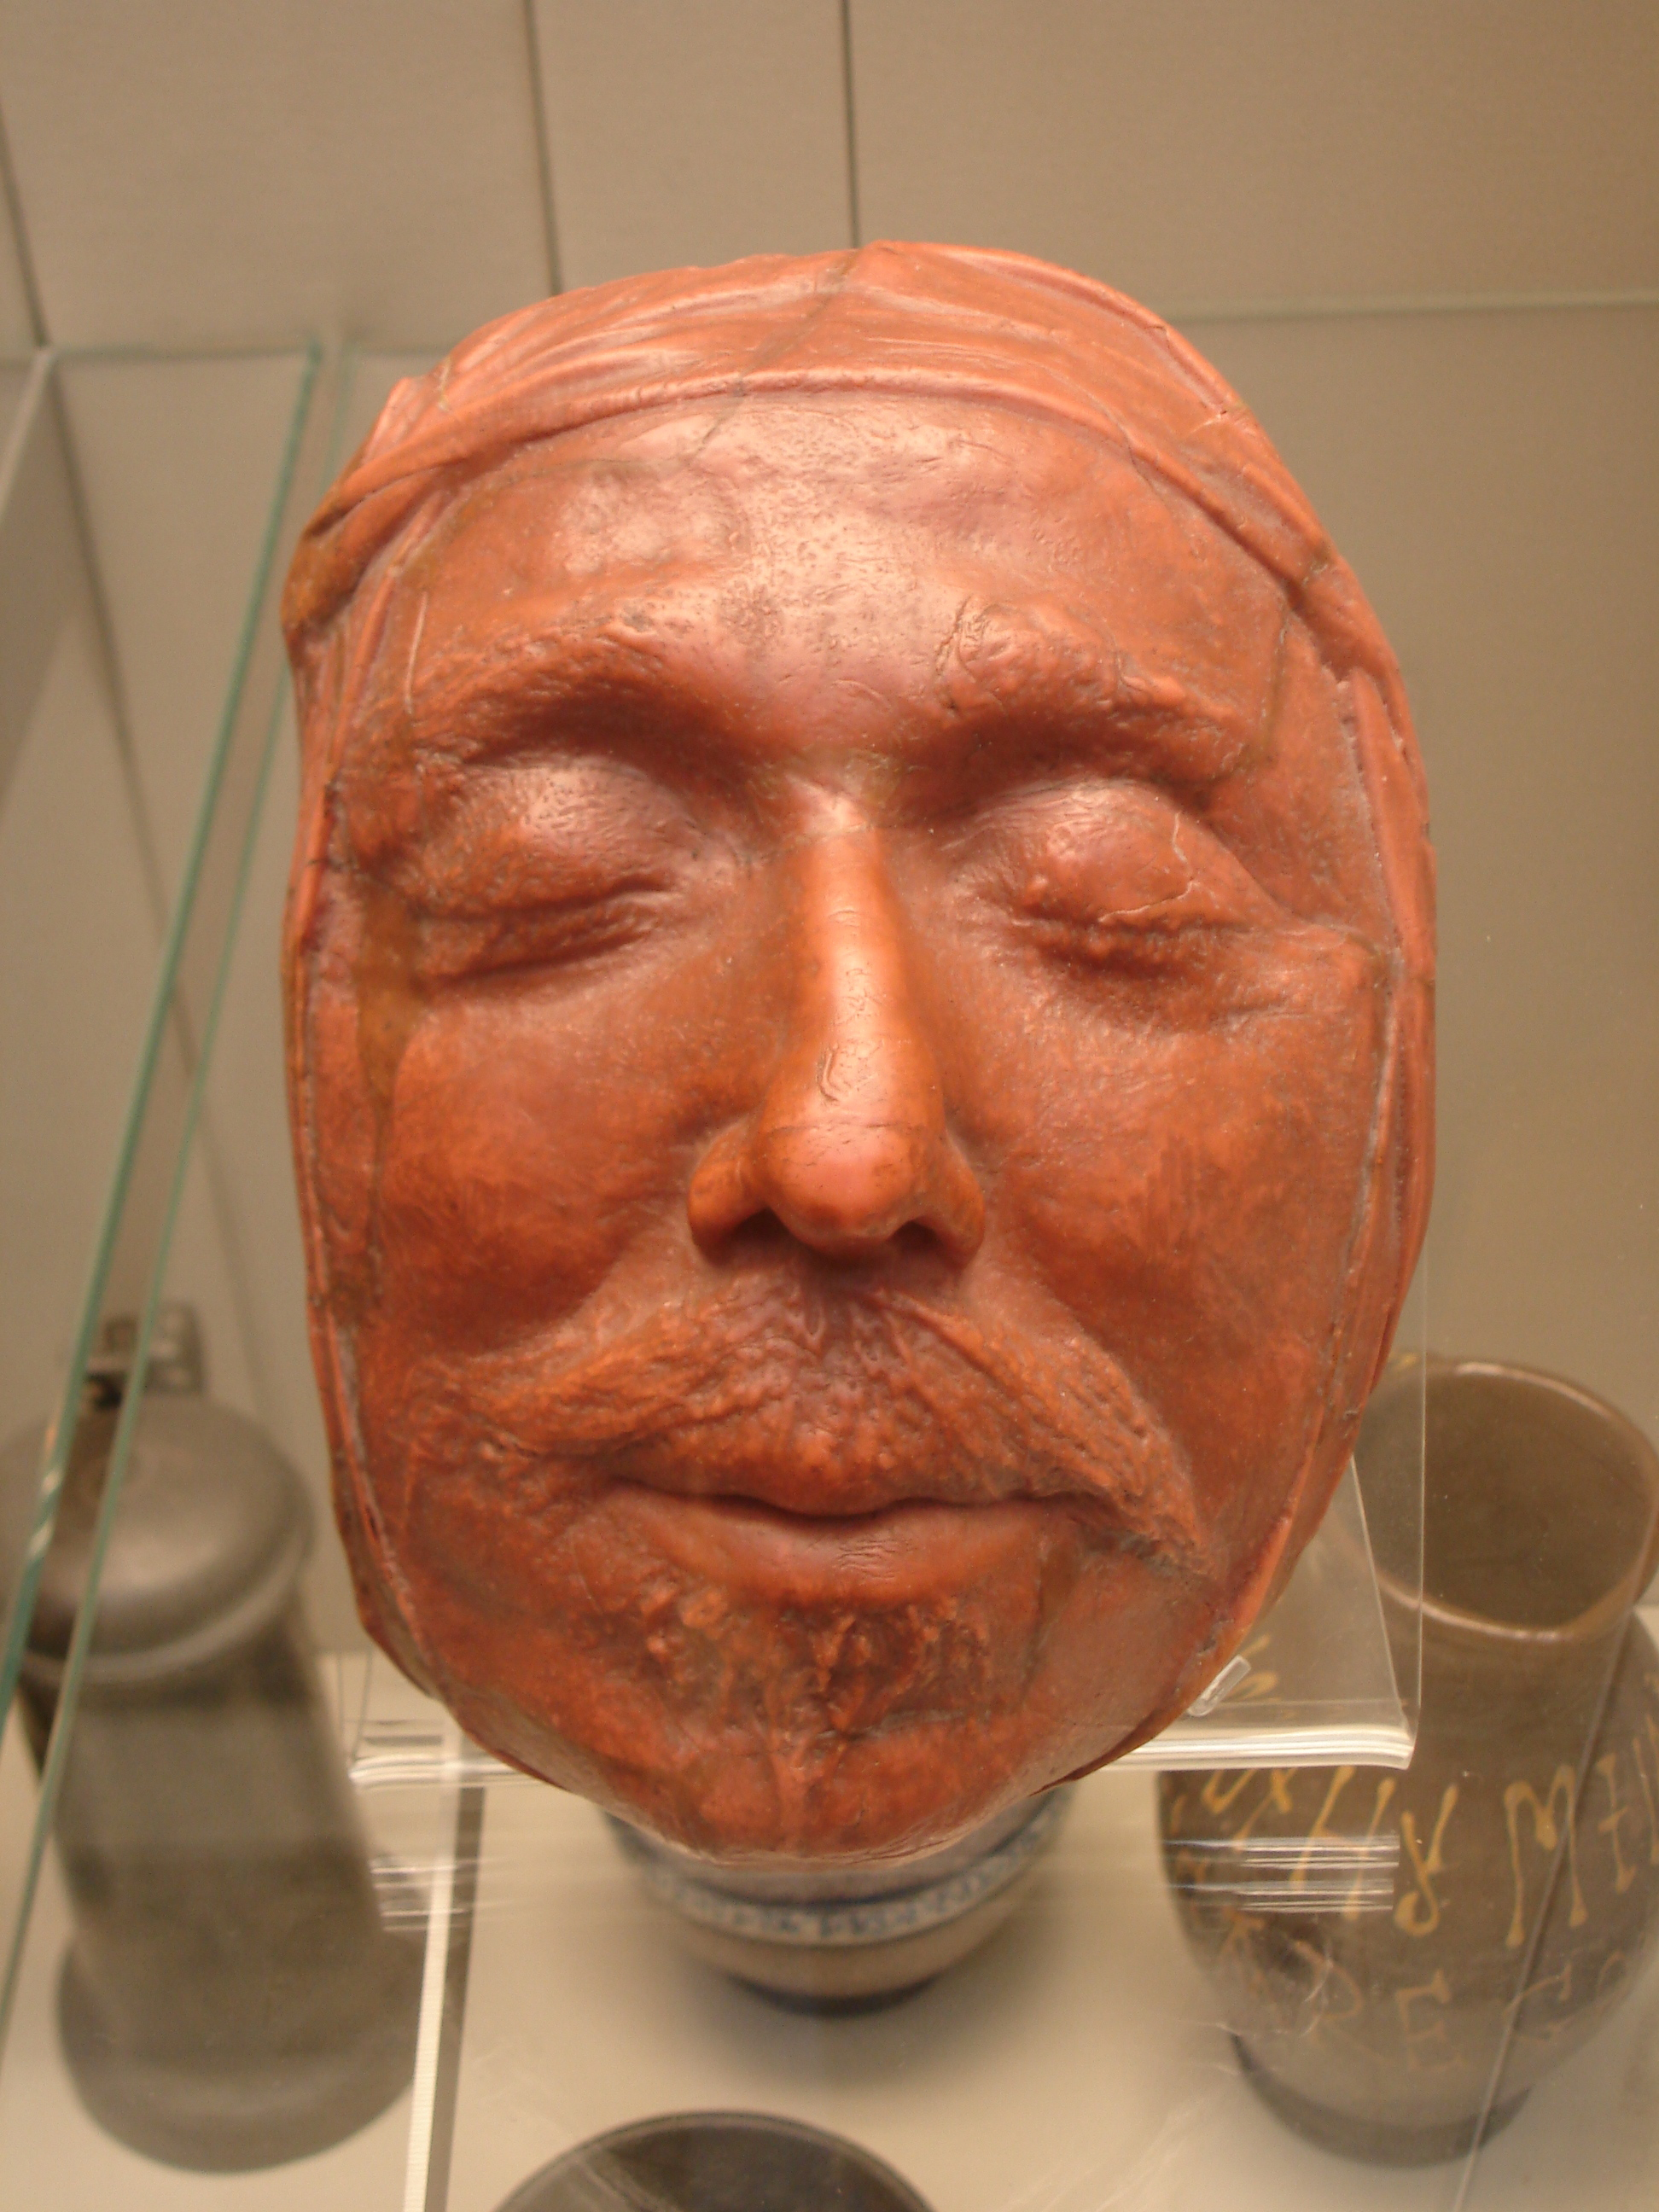 File:Oliver Cromwell's death mask.jpg - Wikimedia Commons